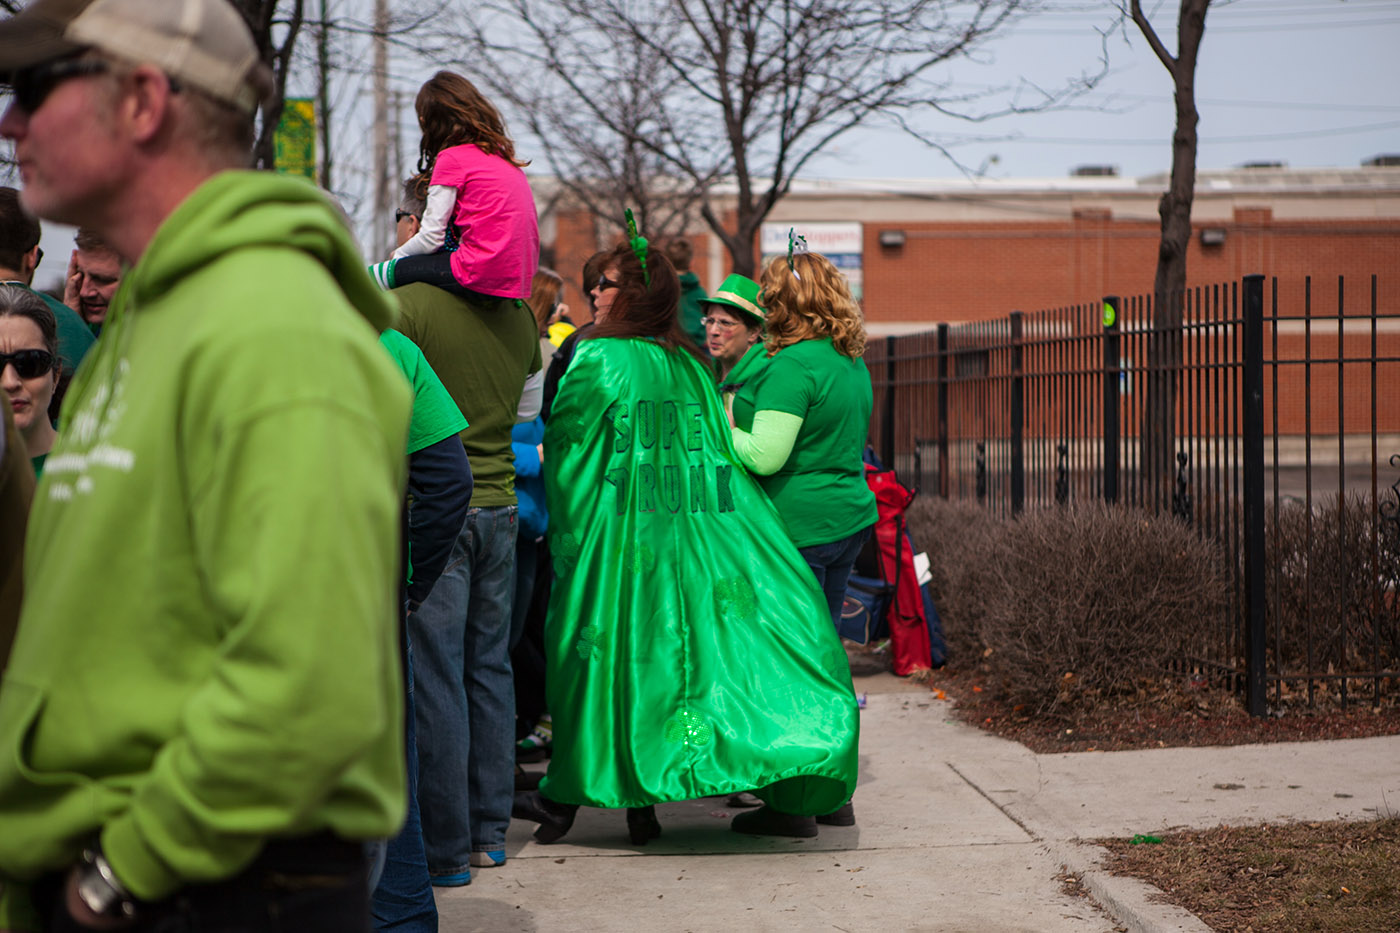 Super Drunk Cape at Chicago South Side Irish Parade 2015 - St. Patrick's Day